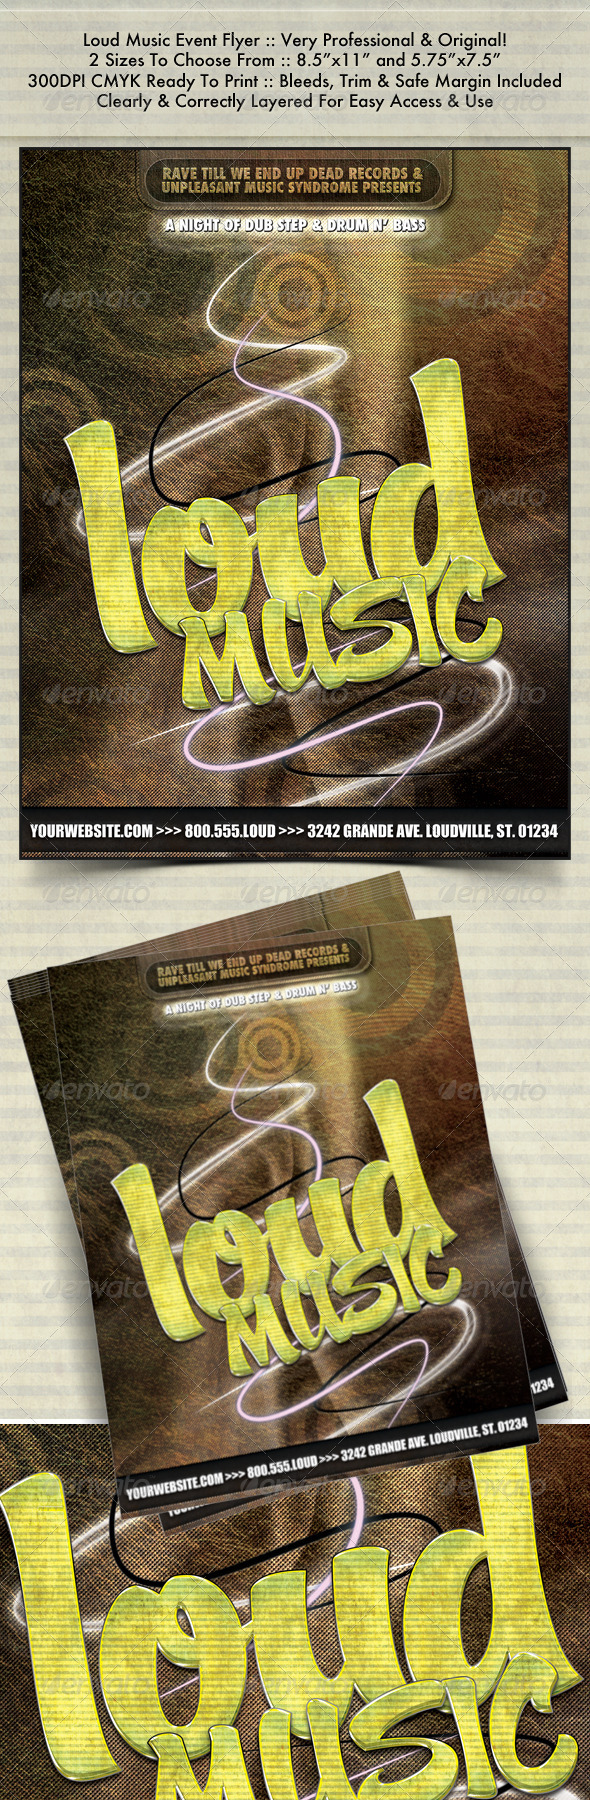 Loud Music Night Club Flyer - Clubs & Parties Events